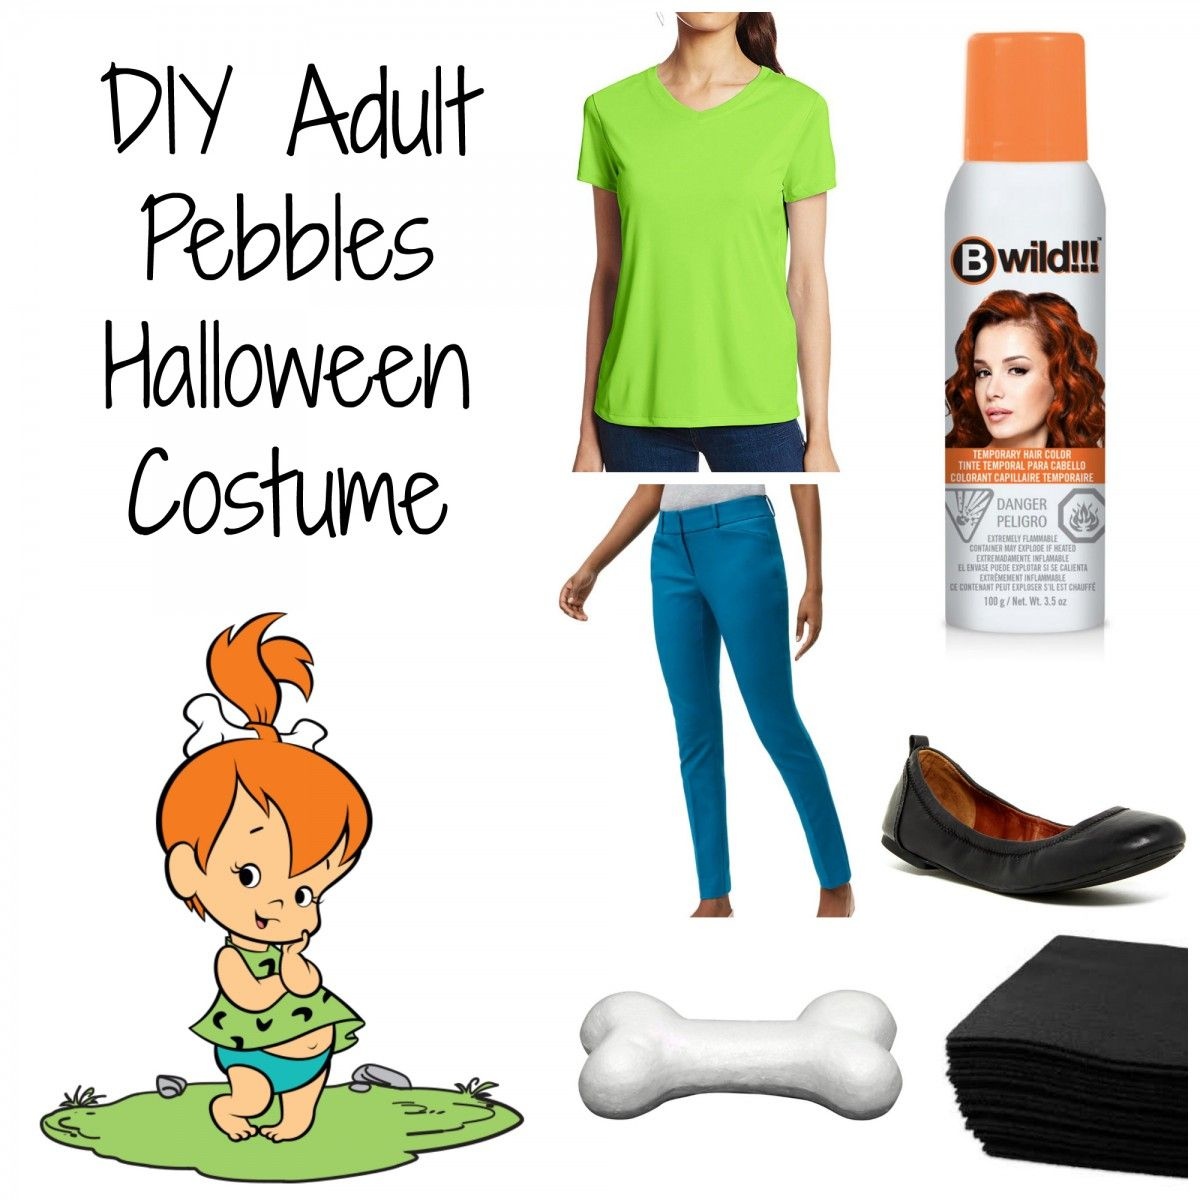 DIY Adult Pebbles Halloween Costume - Her Heartland Soul #pebblescostume